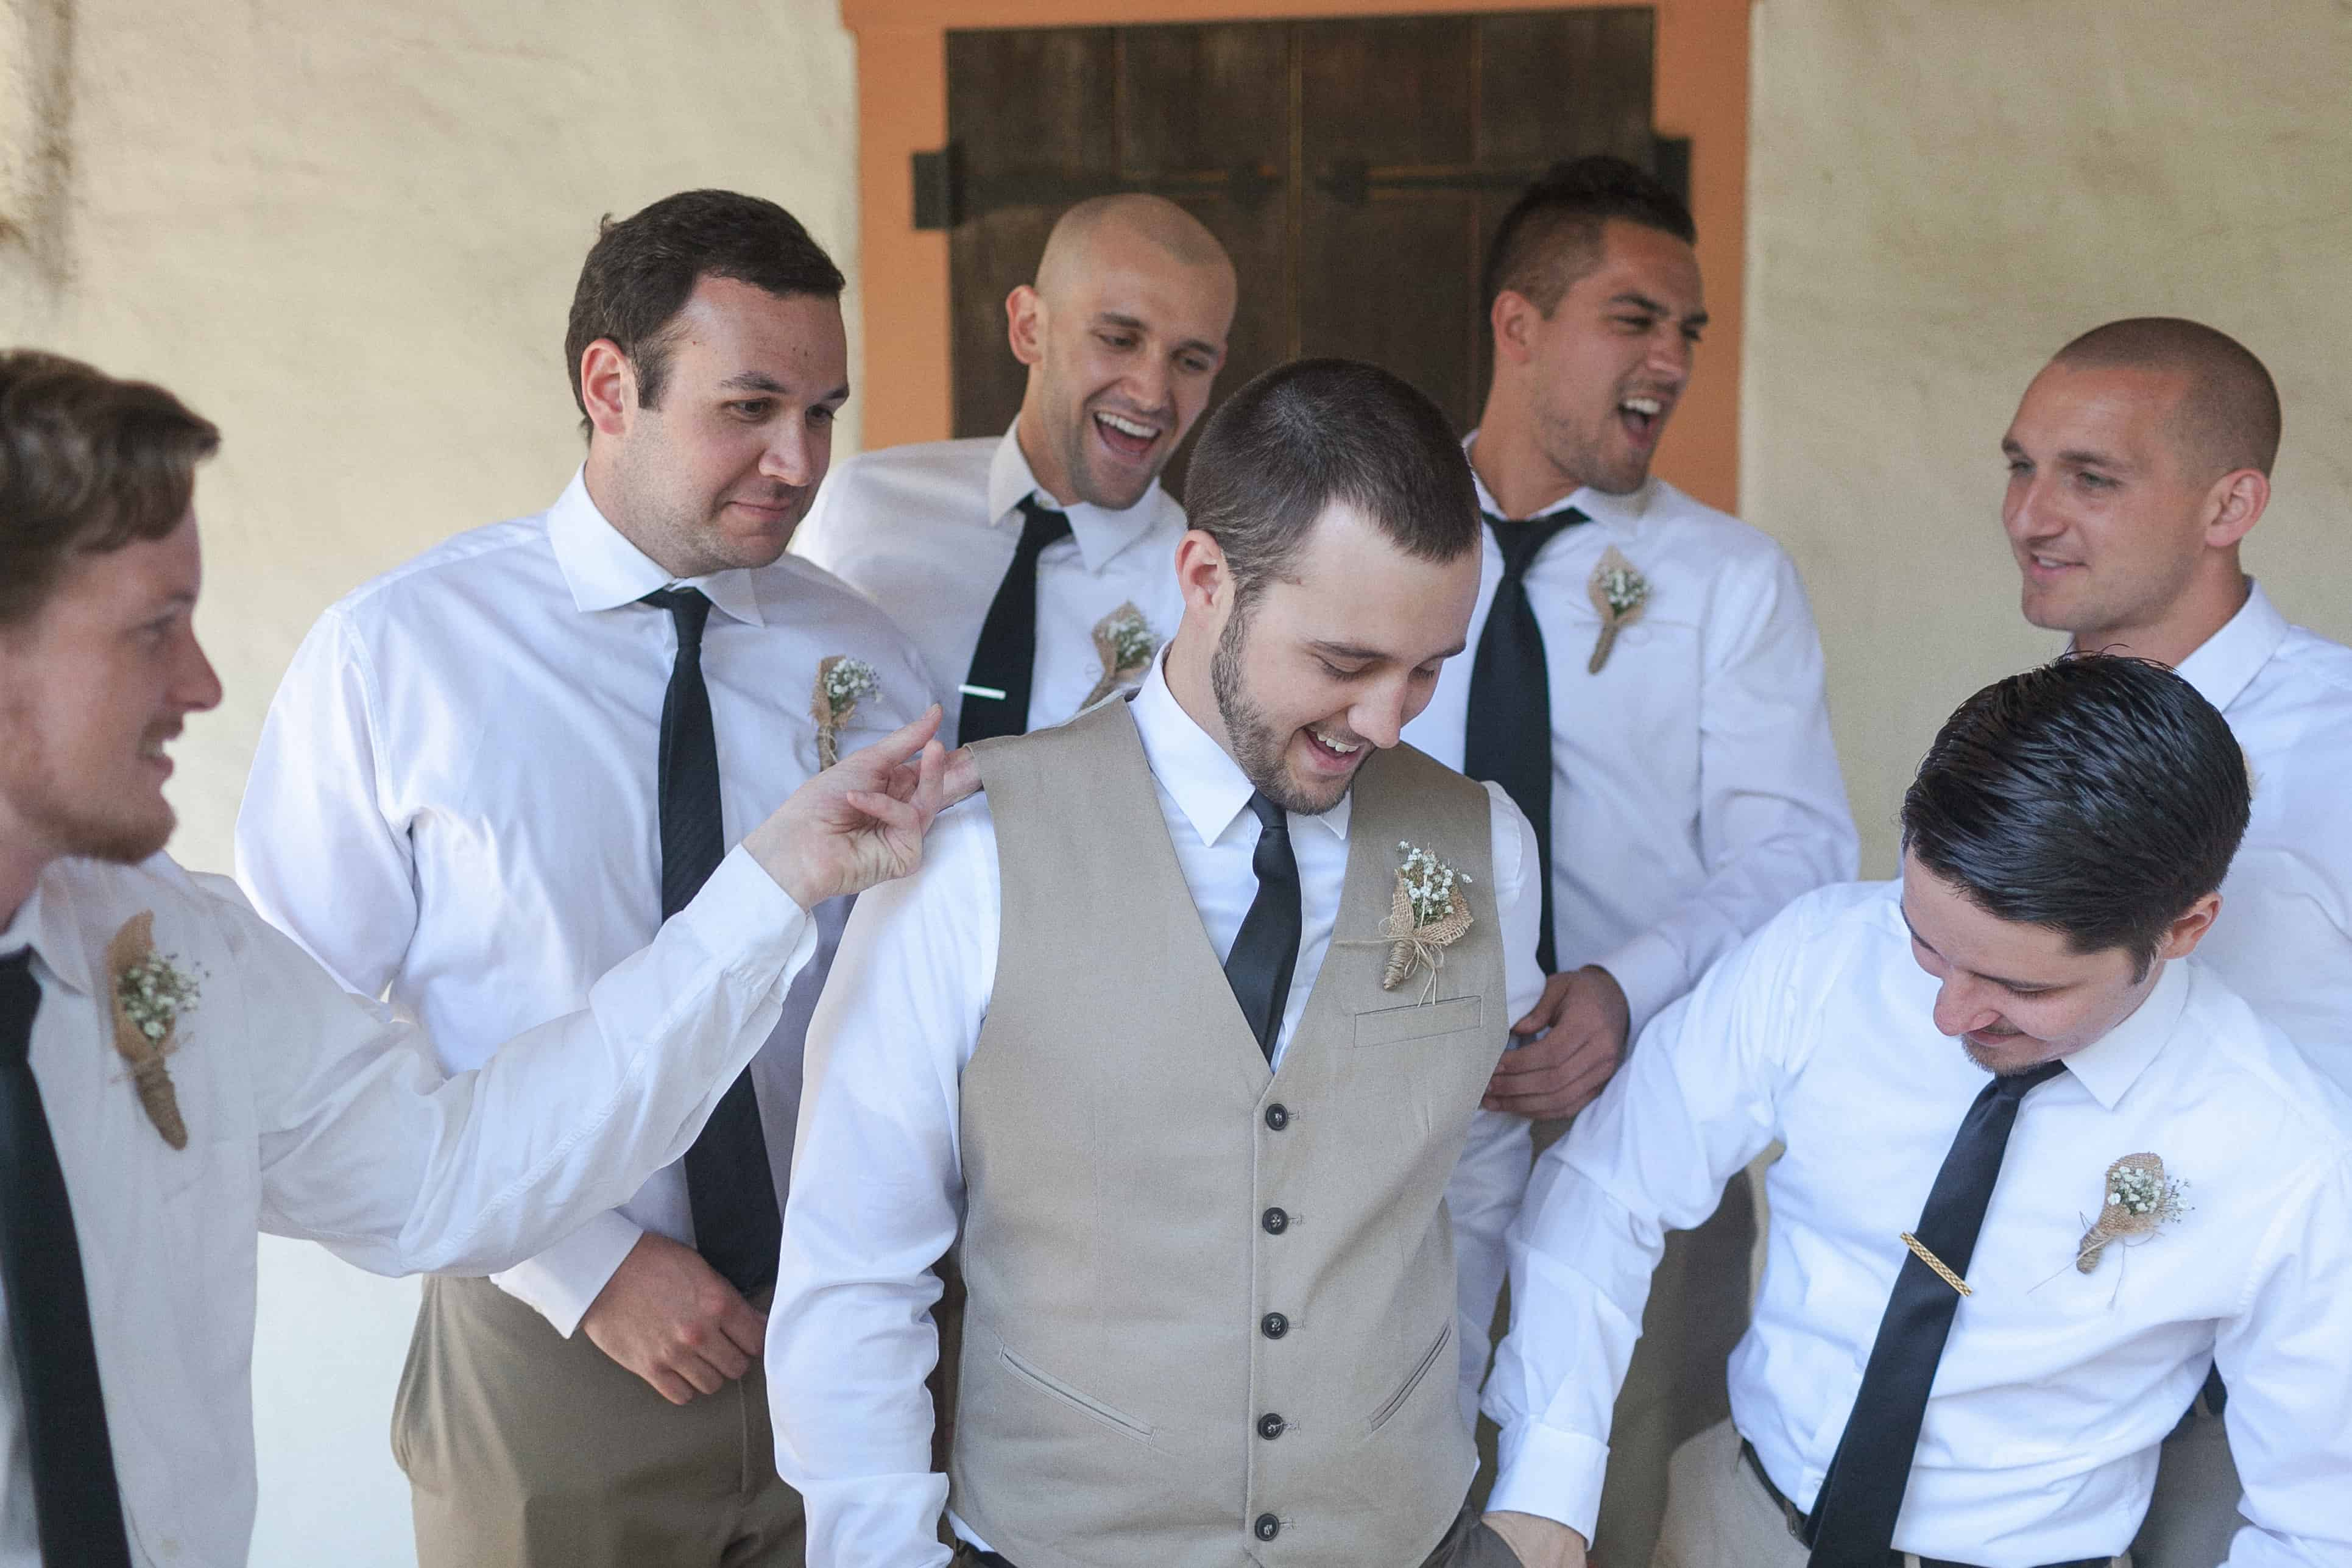 Groomsmen laughing together with the Groom